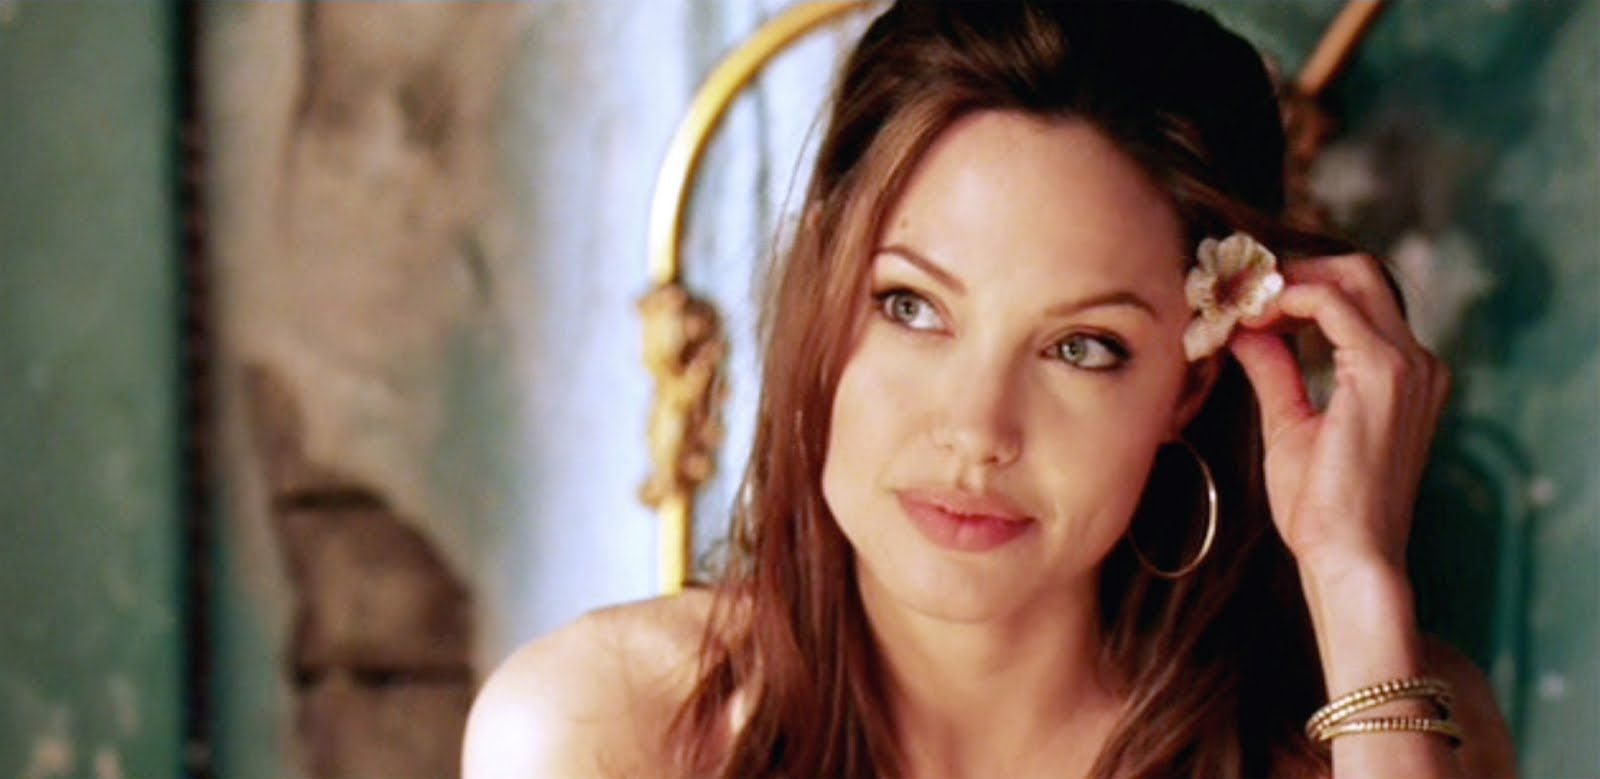 Angelina Jolie Mr And Mrs Smith Interview Pin By Yoana Damyanova On Angelina Jolie Angelina Jolie Angelina Jolie Images Angelina